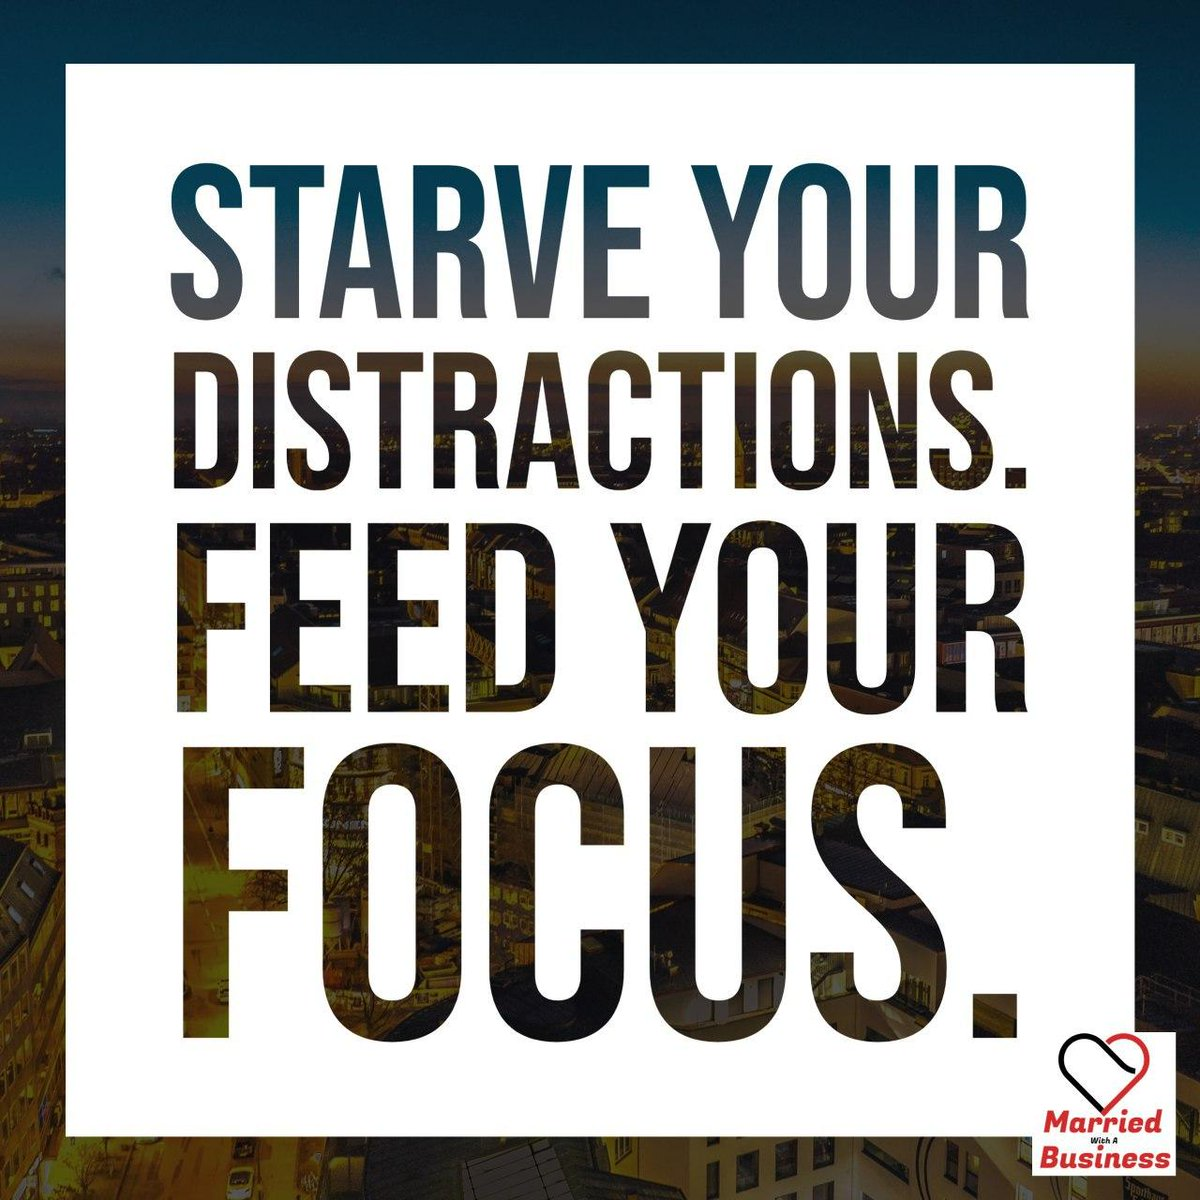 Feed Your Focus!  ITunes: https://tinyurl.com/Imwb010  Spotify: https://tinyurl.com/sMWB010  TuneIn: http://tun.in/tkLjOw   #Focus #Supporteachother #buildeachotherup #marriage #partners #MWB #FindingFocus #Findingyourpath #values #commongoal #movingforwardpic.twitter.com/jlLGjt1pl8